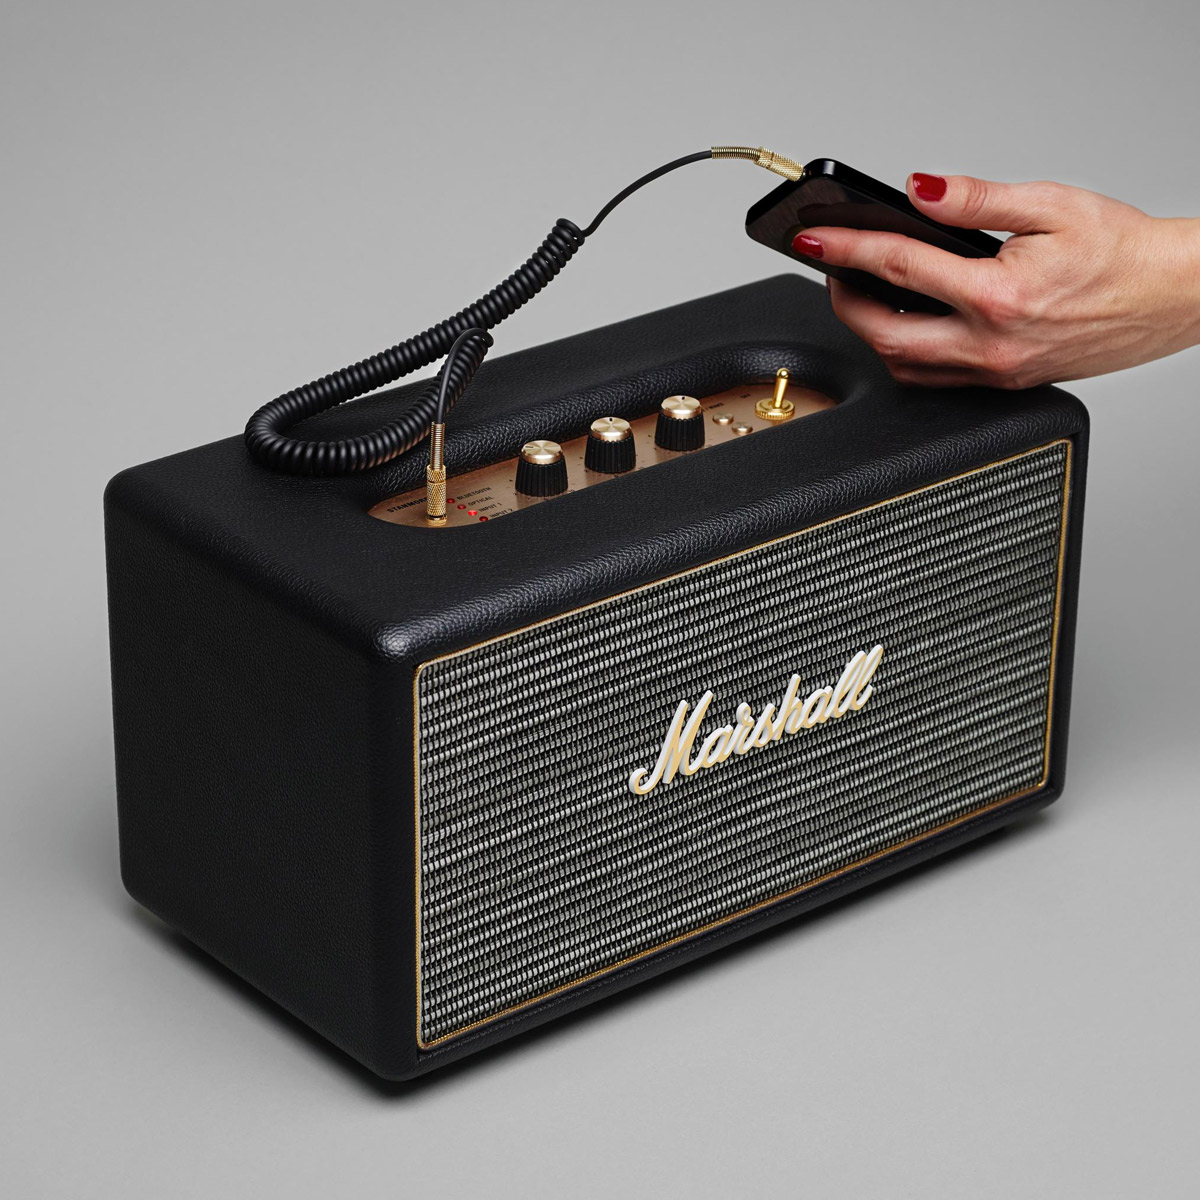 Marshall-Stanmore-Wireless-Bluetooth-Stereo-Speaker-System